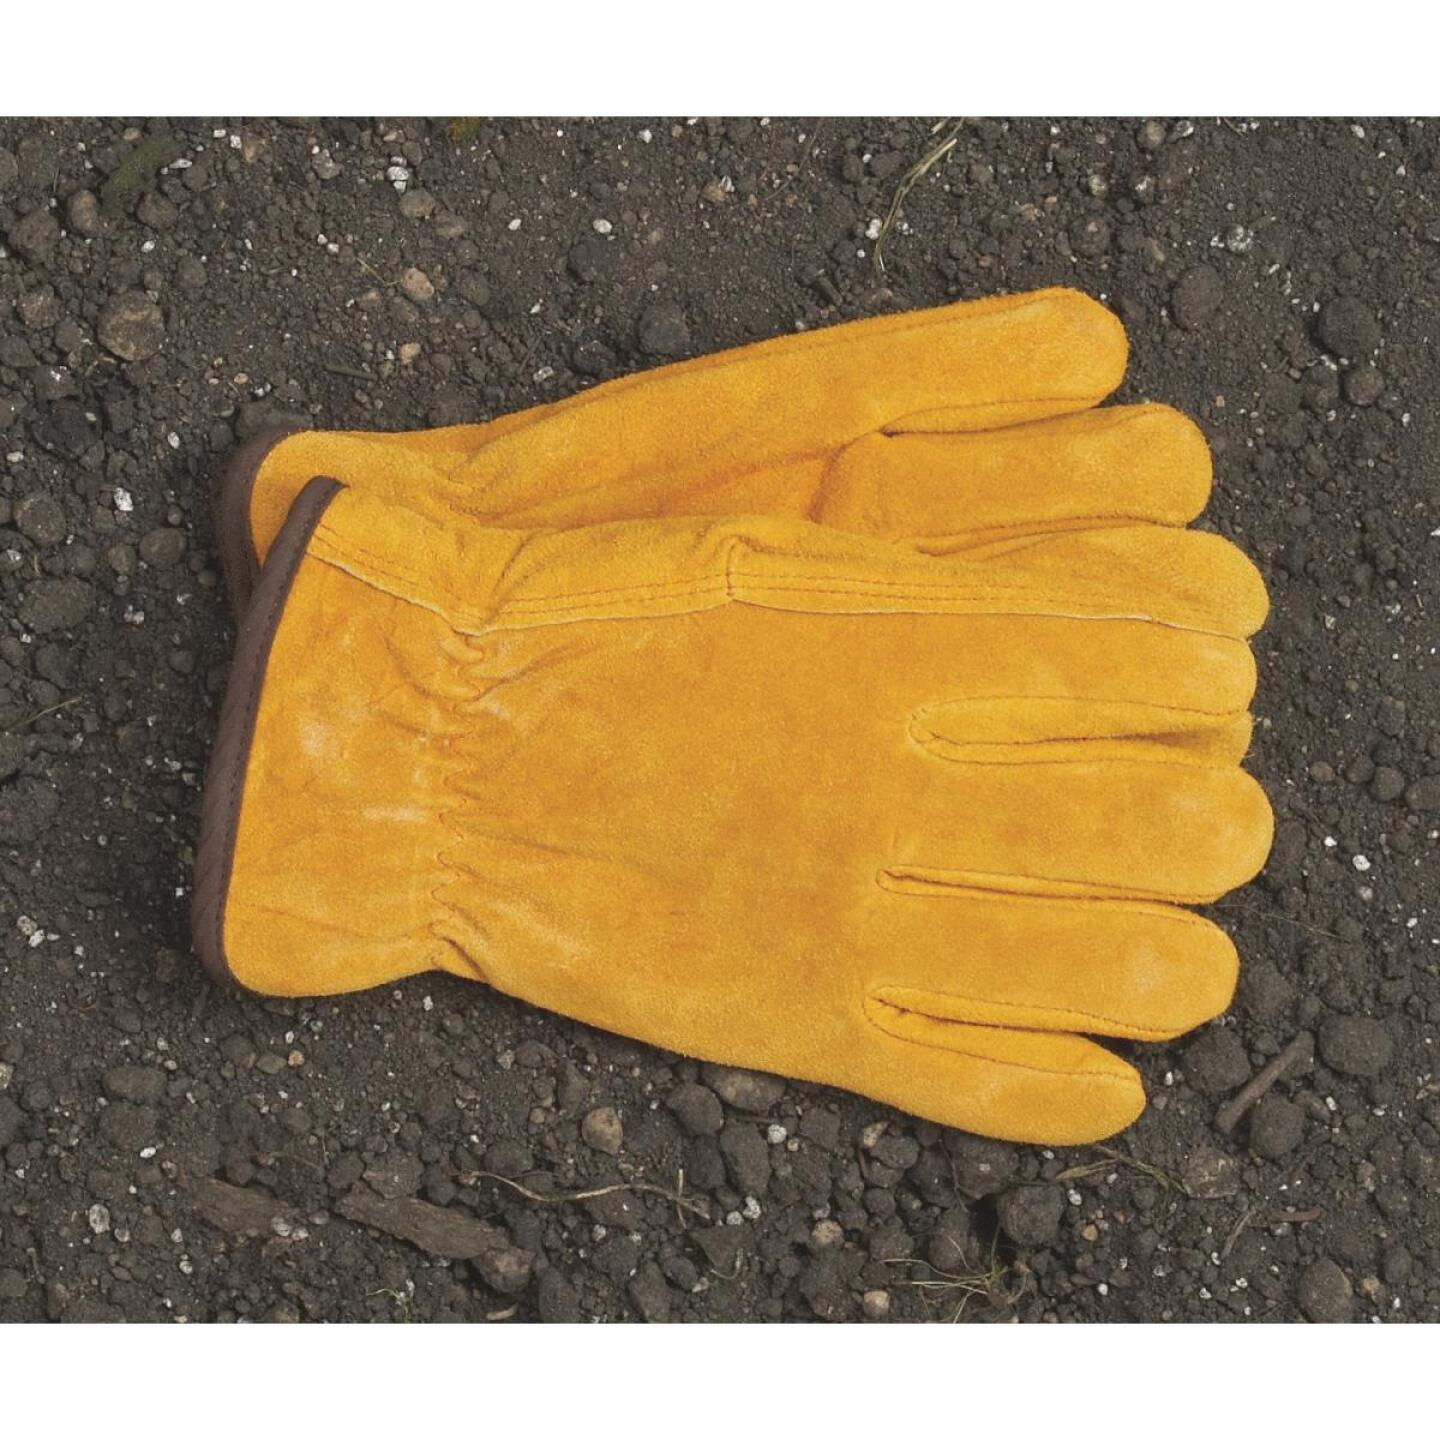 Do it Men's XL Lined Leather Winter Work Glove Image 2